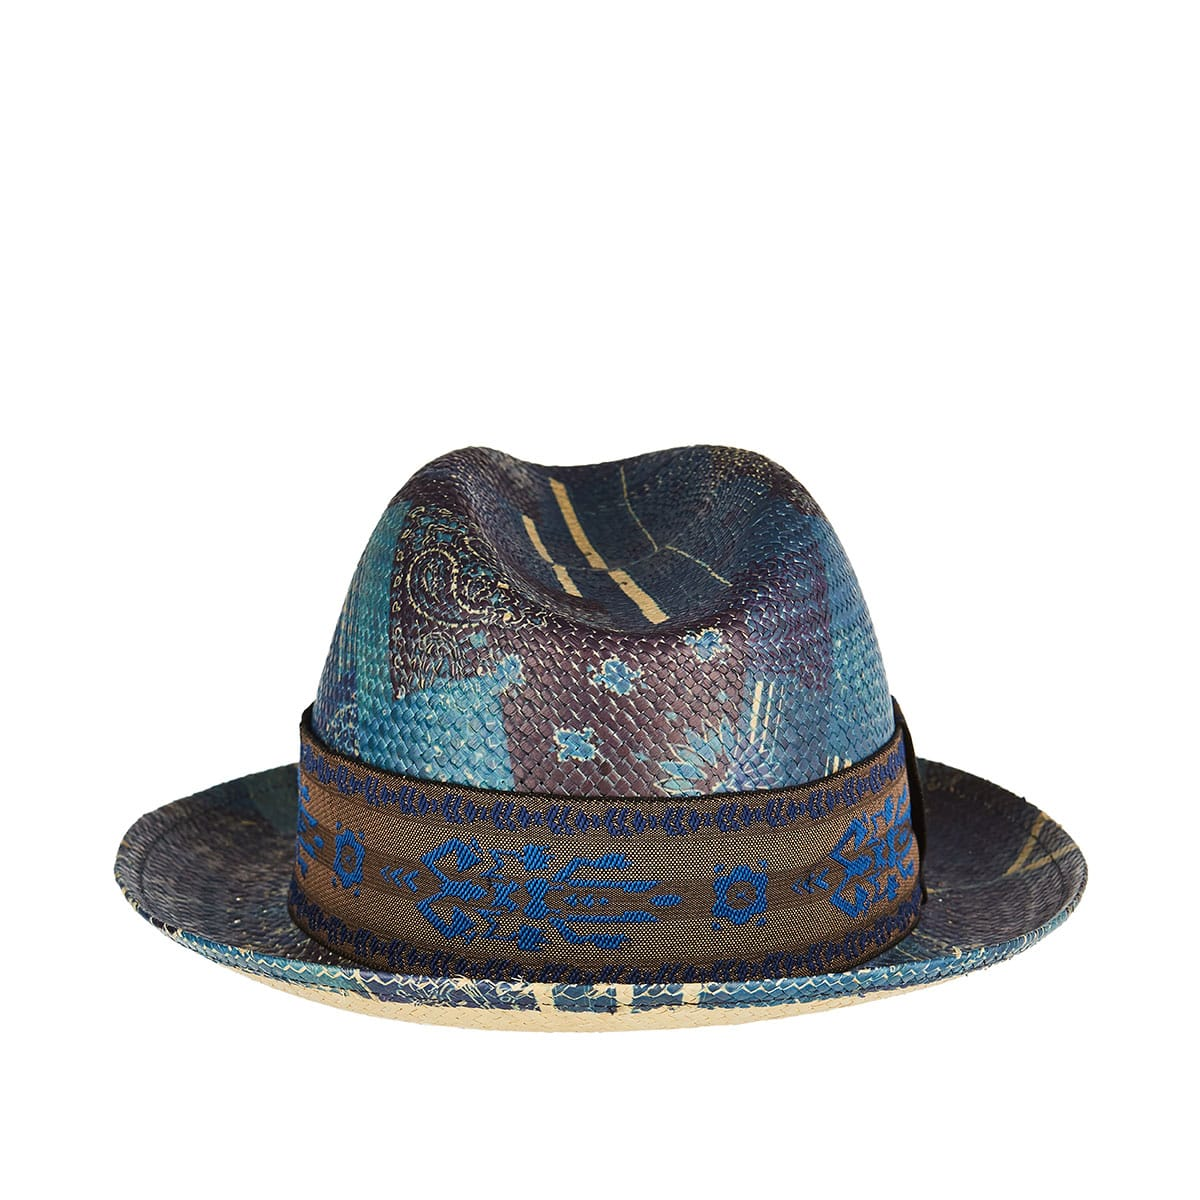 Paisley-printed woven hat